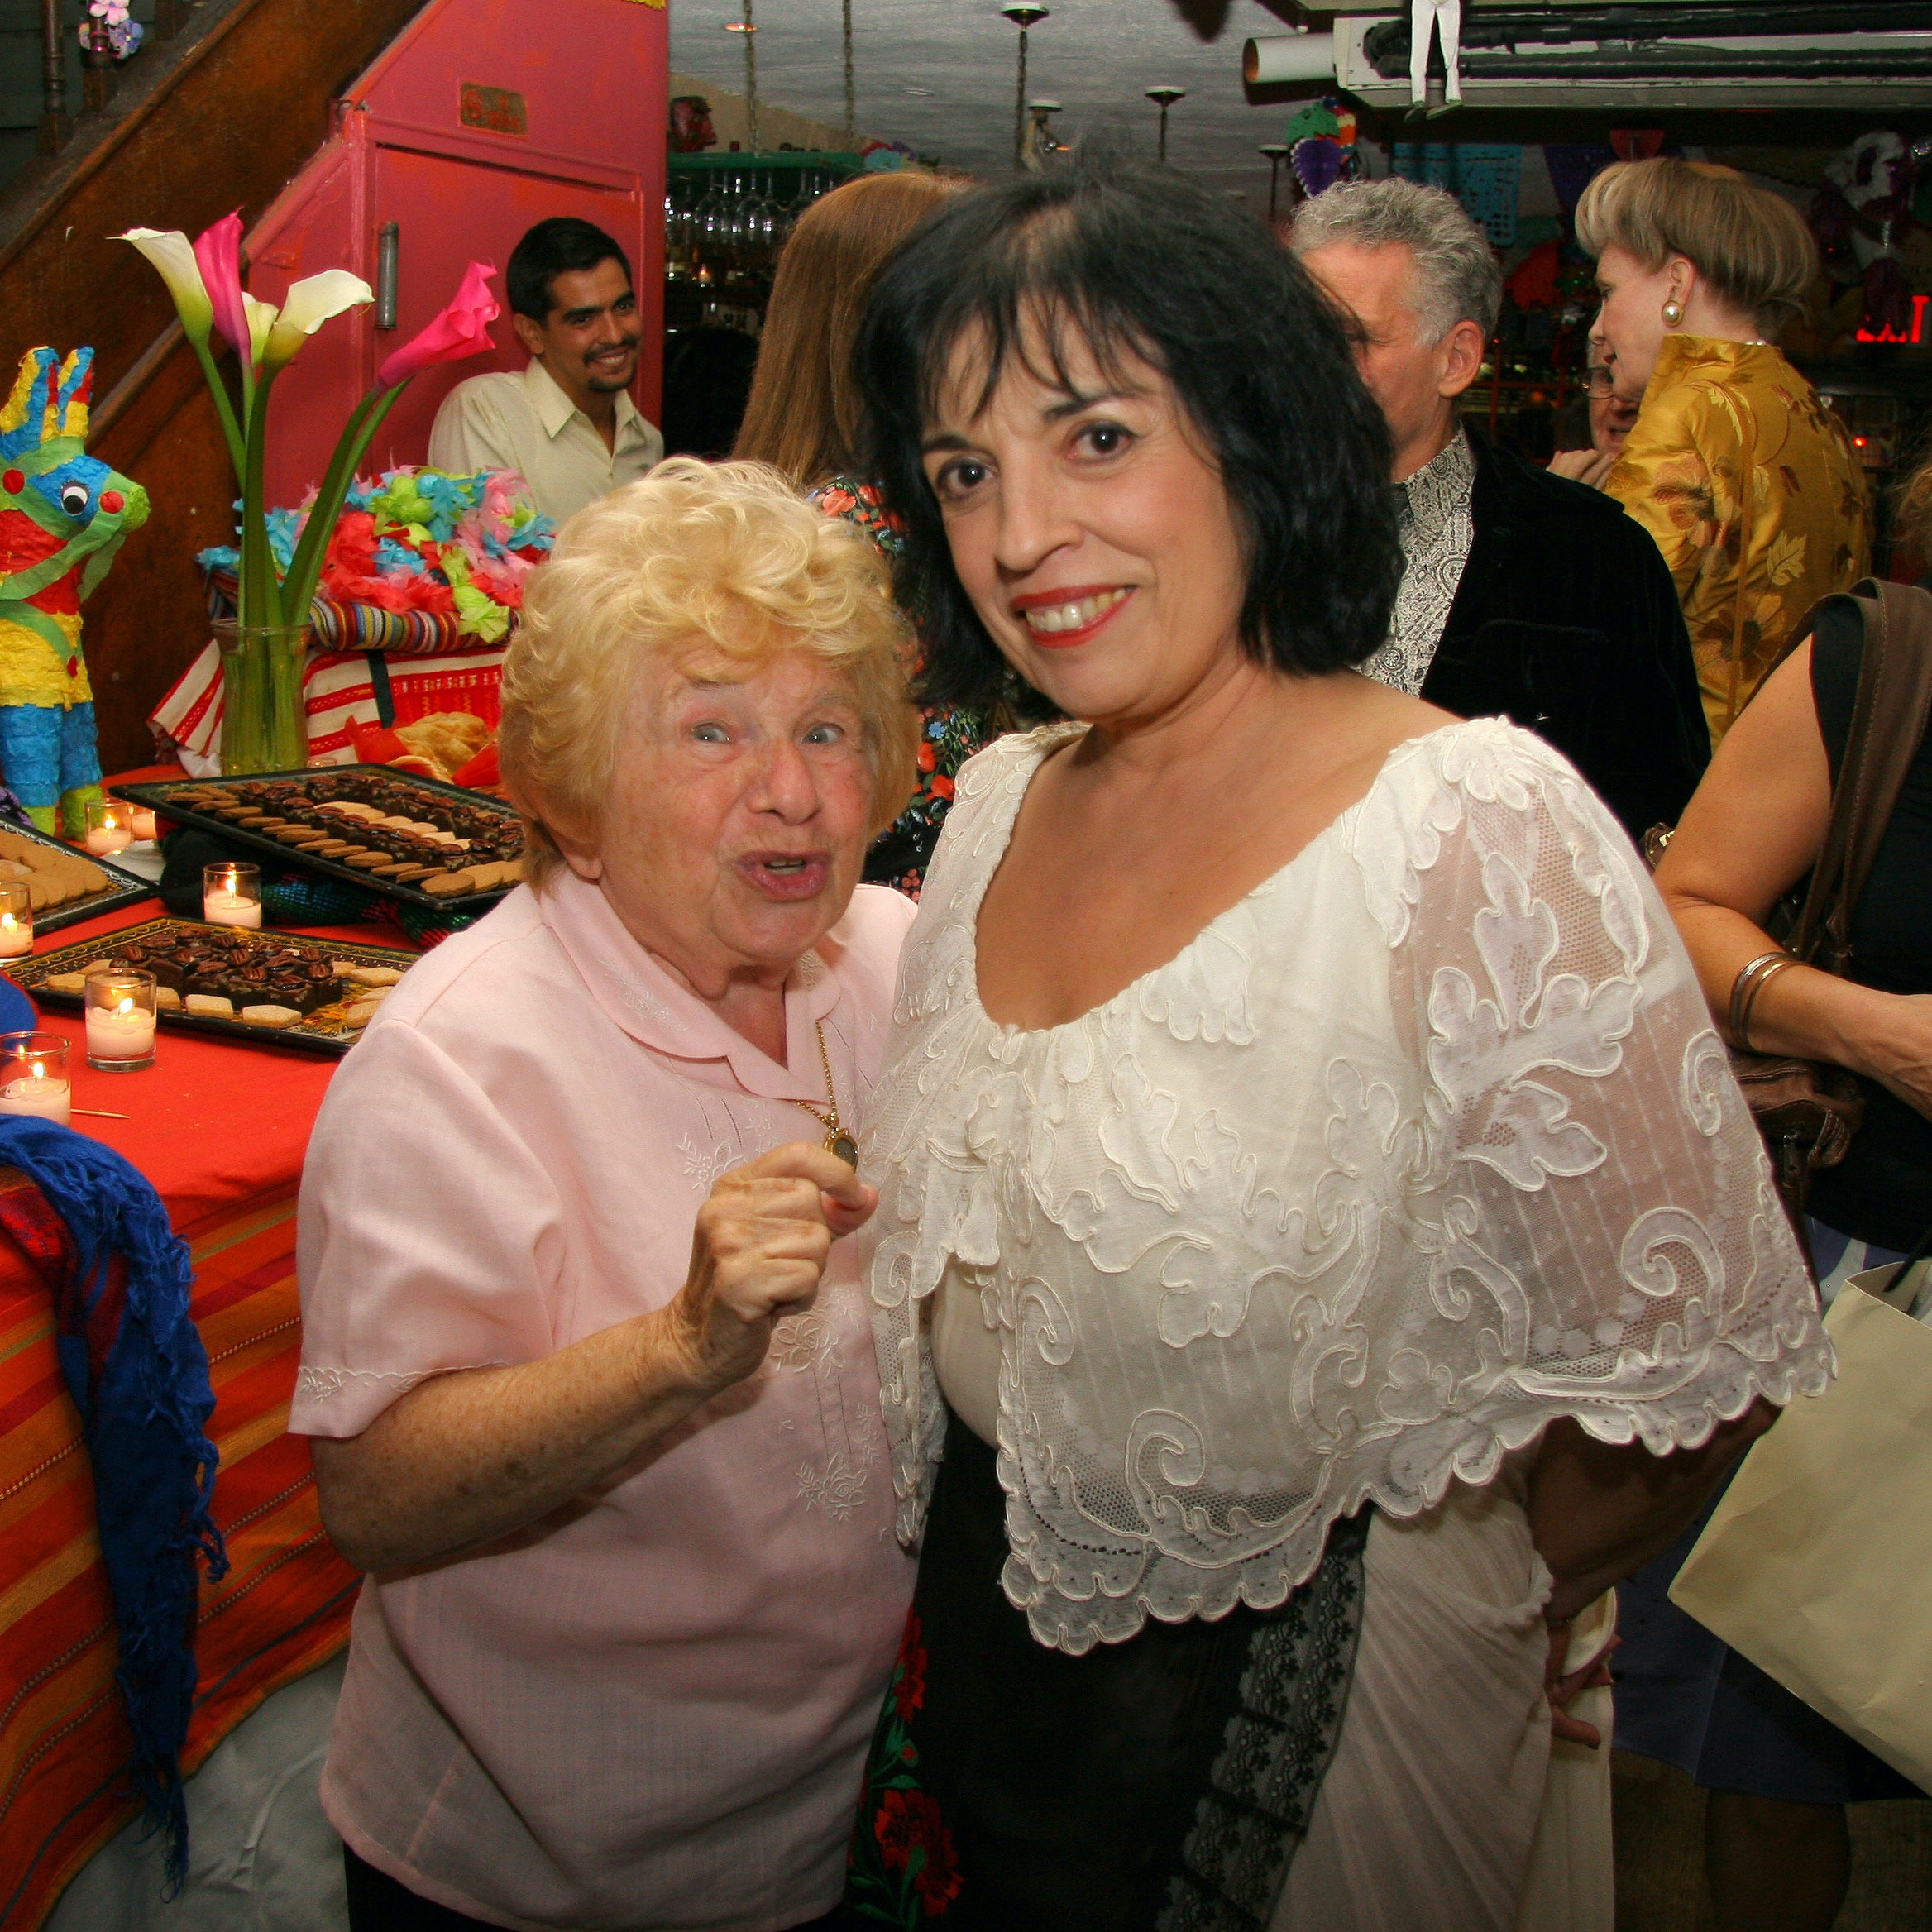 Zarela with an unidentified women, private party at restaurant